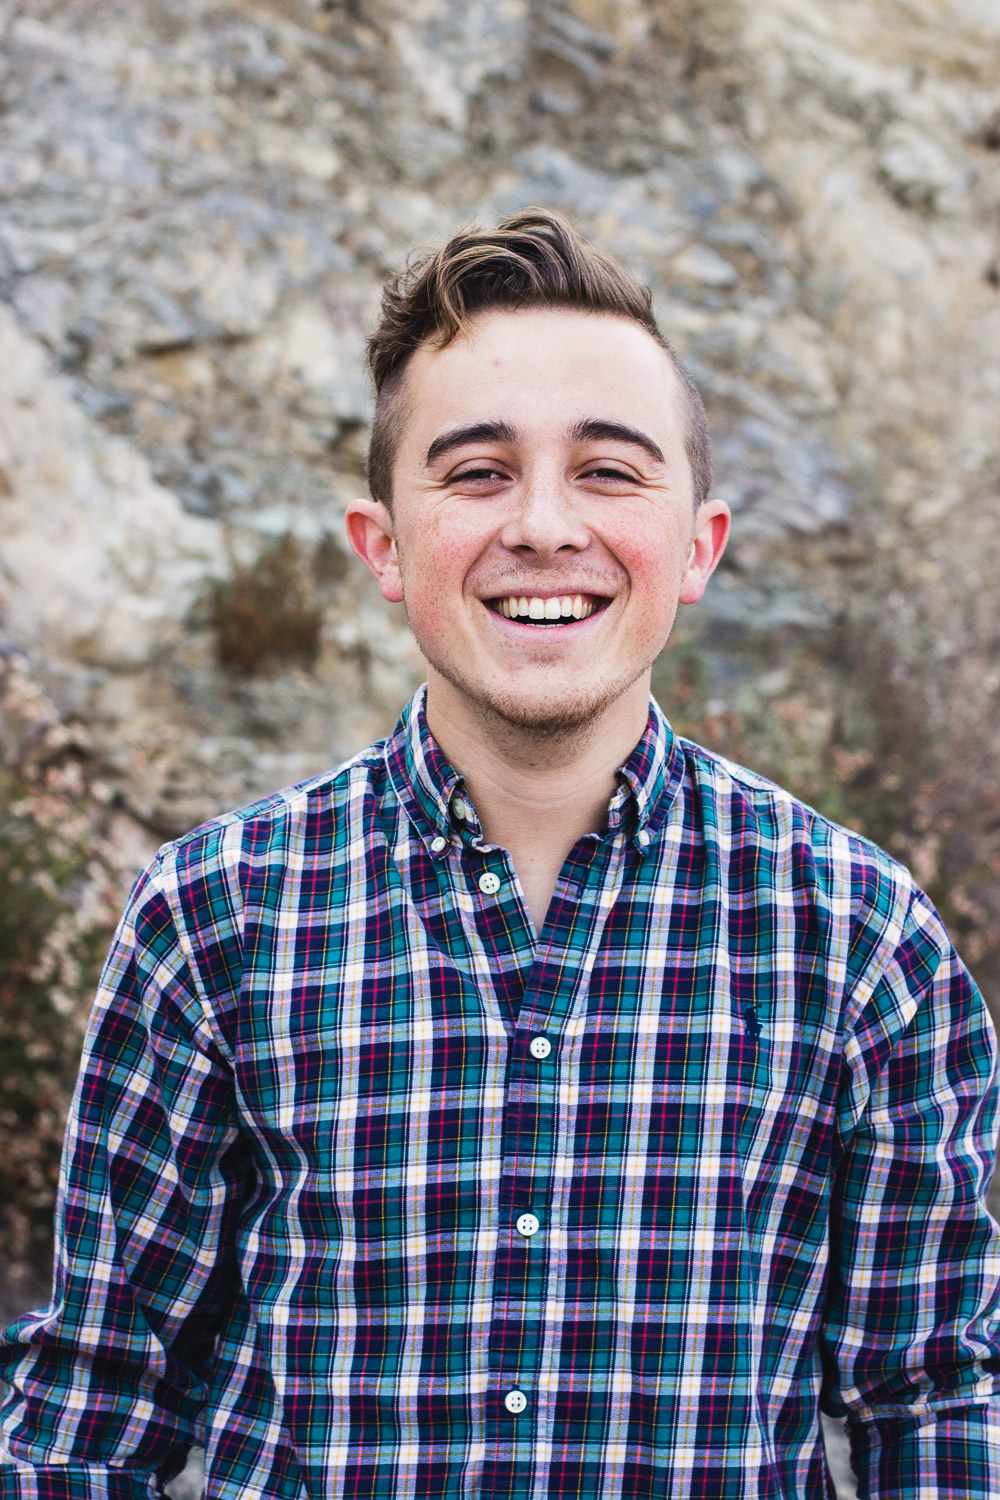 Drew Brown. 20s. Frankie Muniz Look Alike. Adventurer. Lover of many things.